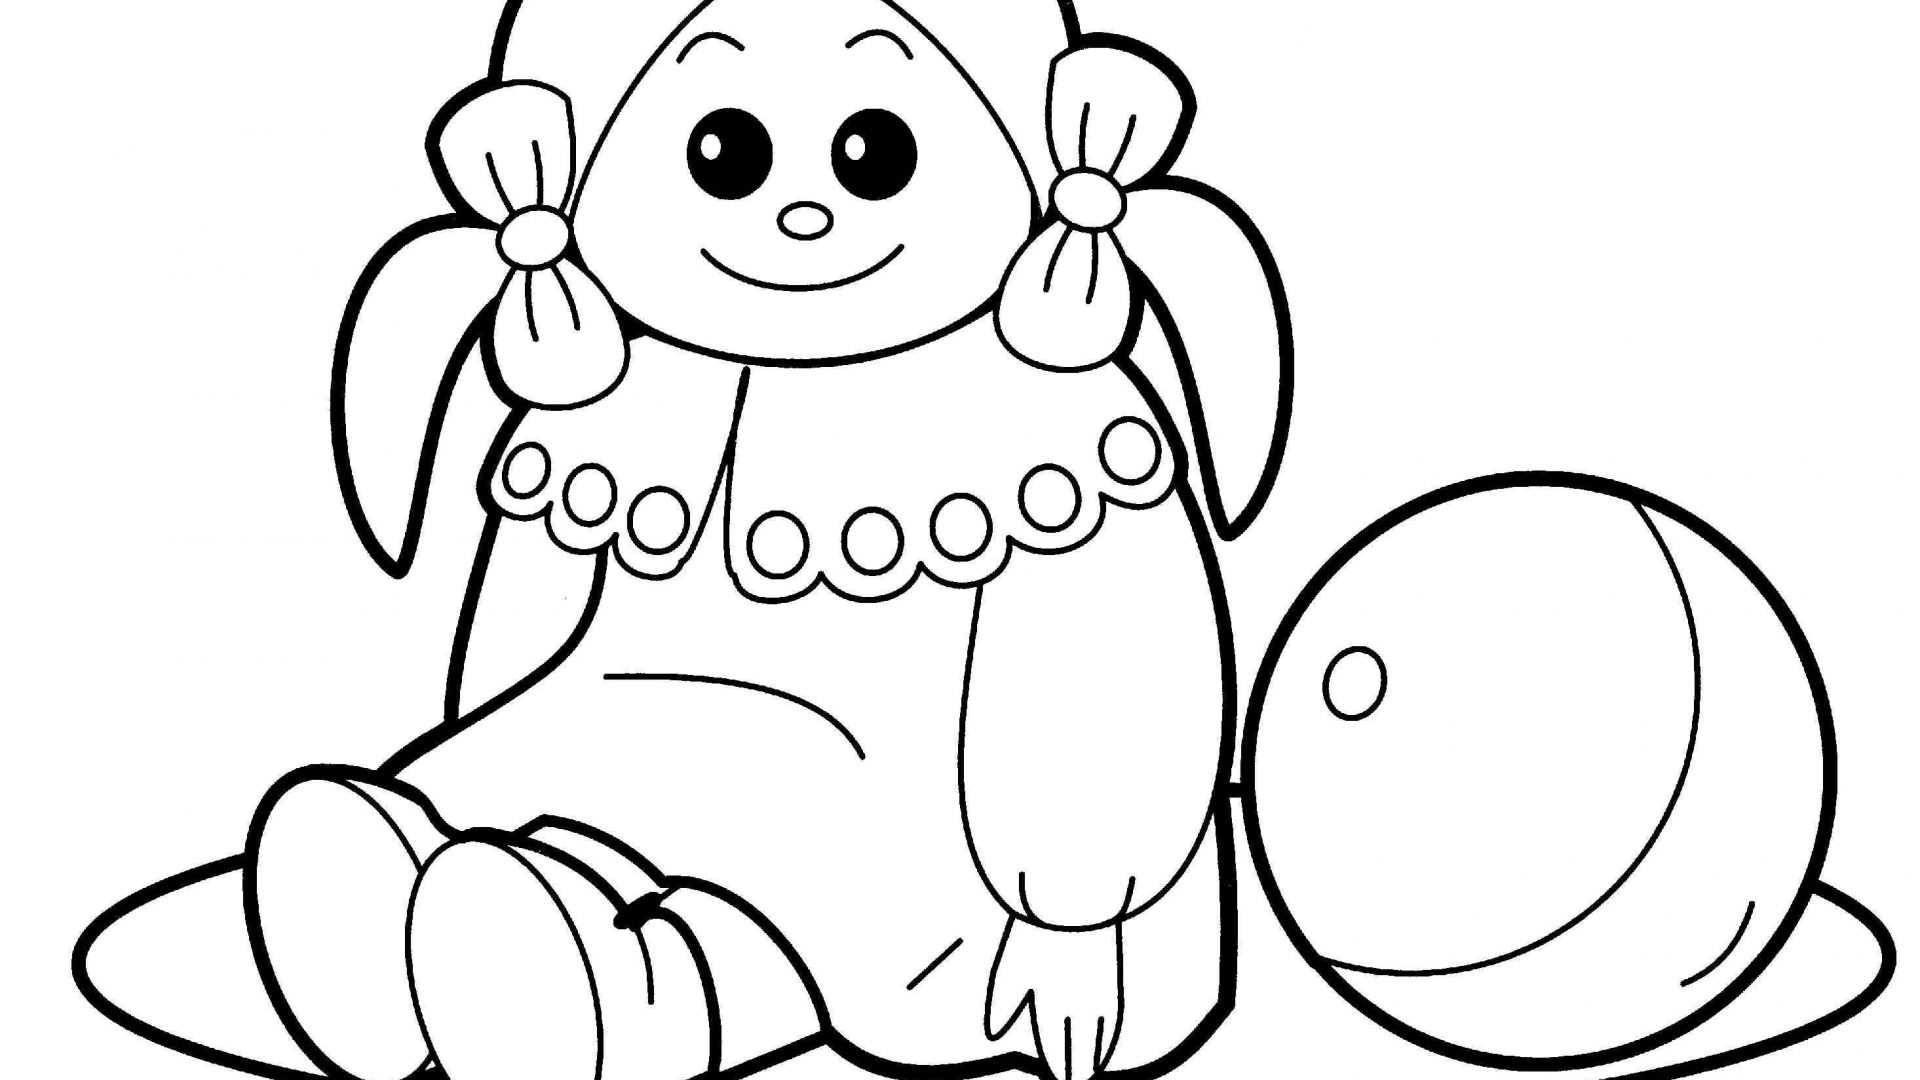 Toy Drawing at GetDrawings.com | Free for personal use Toy Drawing ...